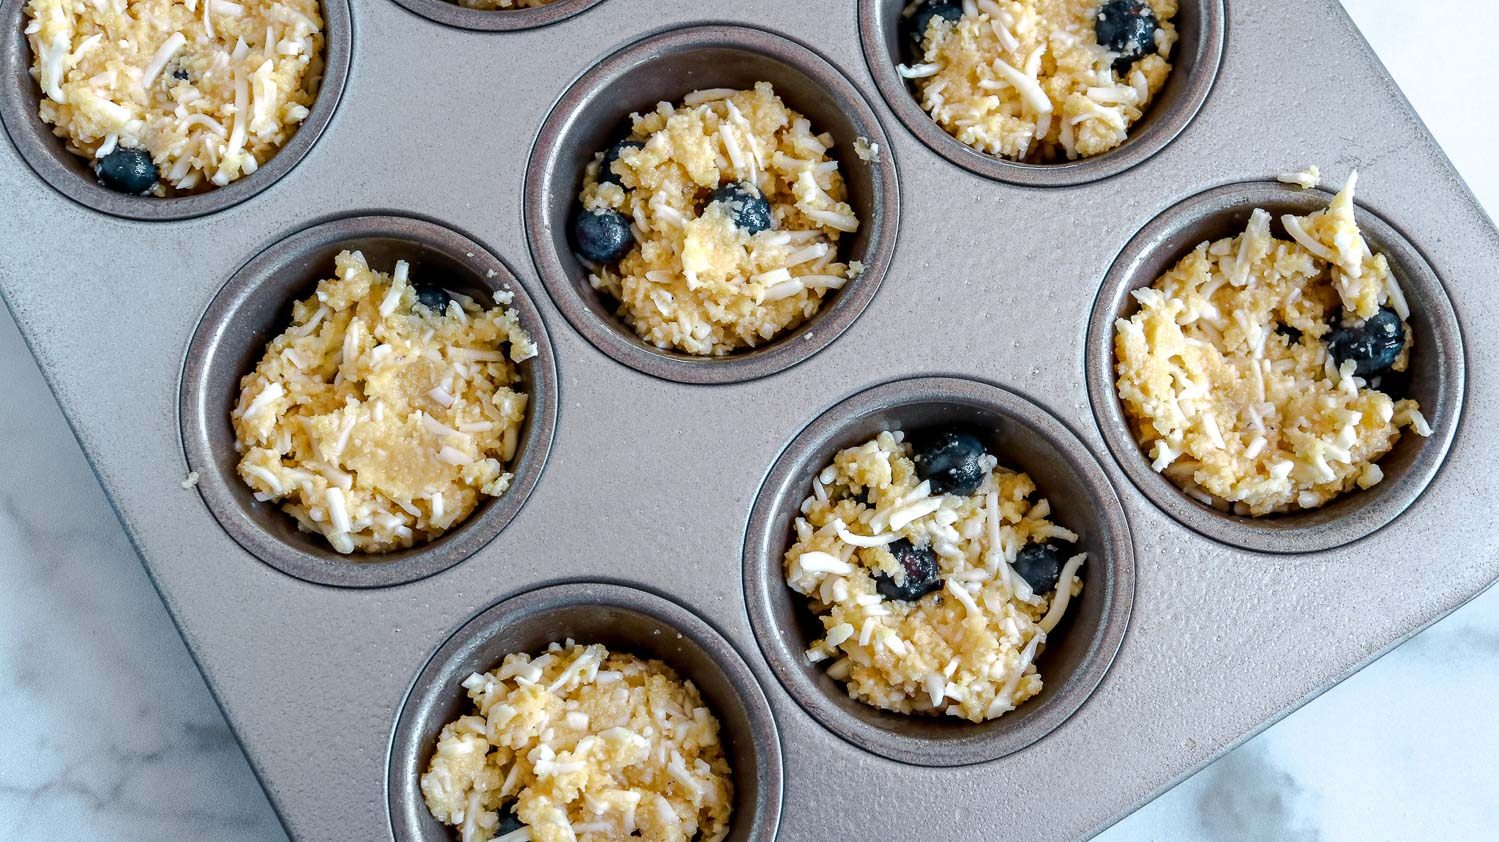 A muffin pan with uncooked keto muffin batter in it.